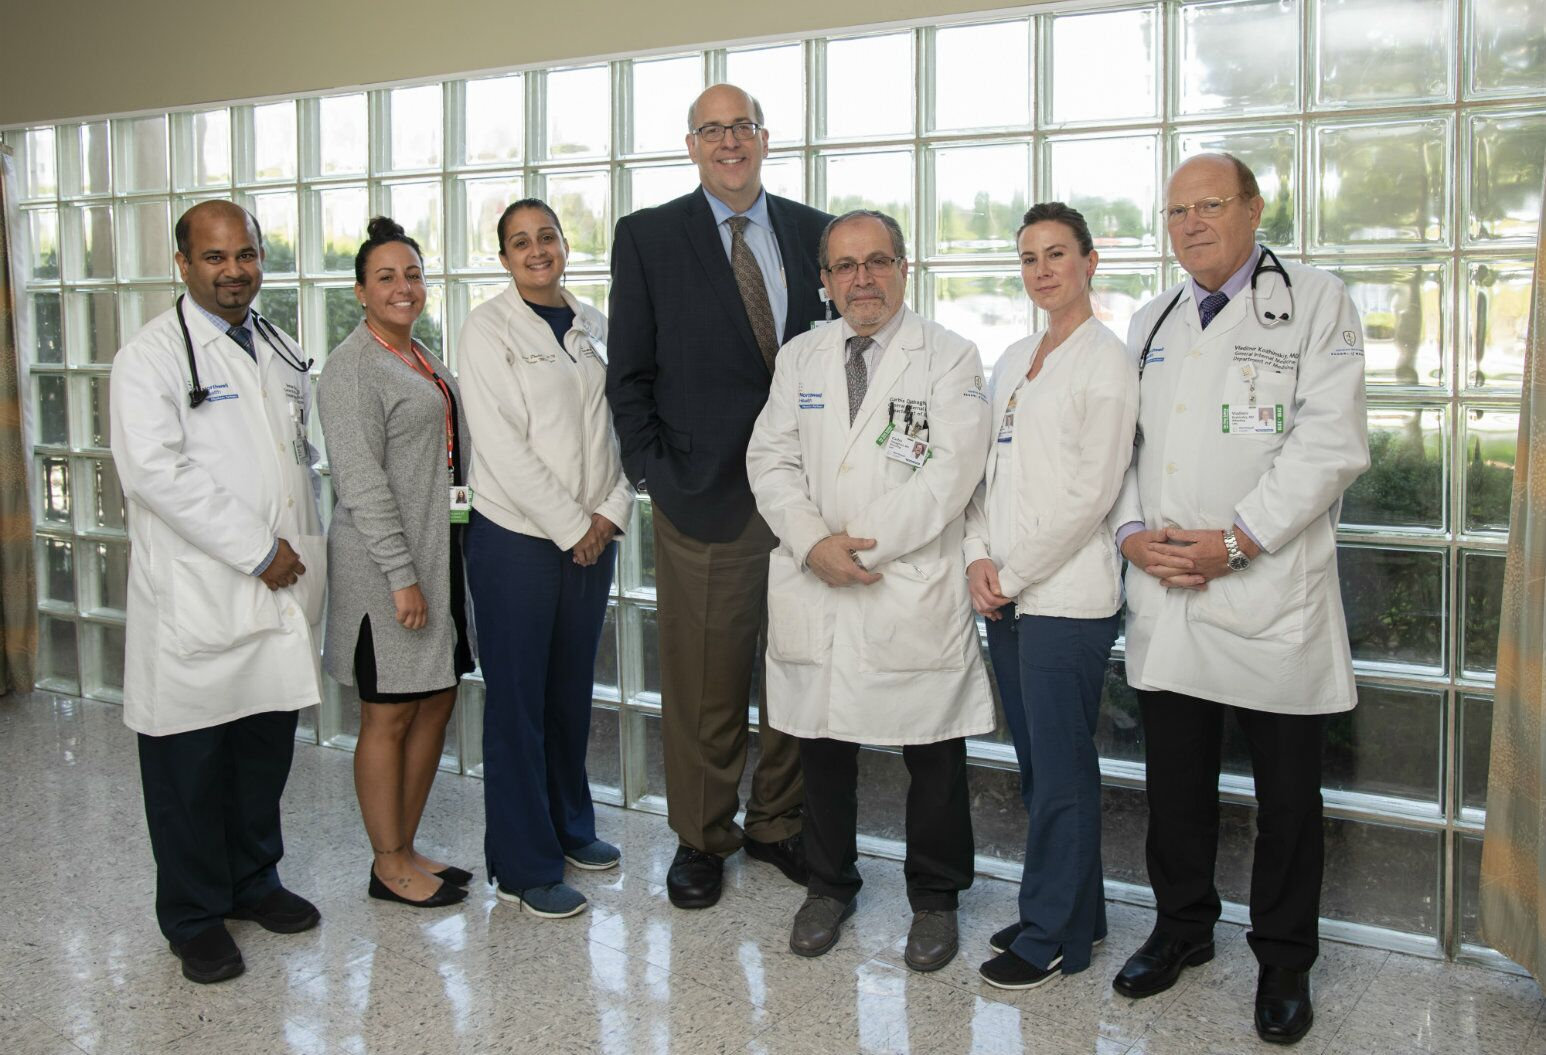 Matthew Weeks, MD, and other doctors and administrators pose for a picture in front of an opaque glass wall.